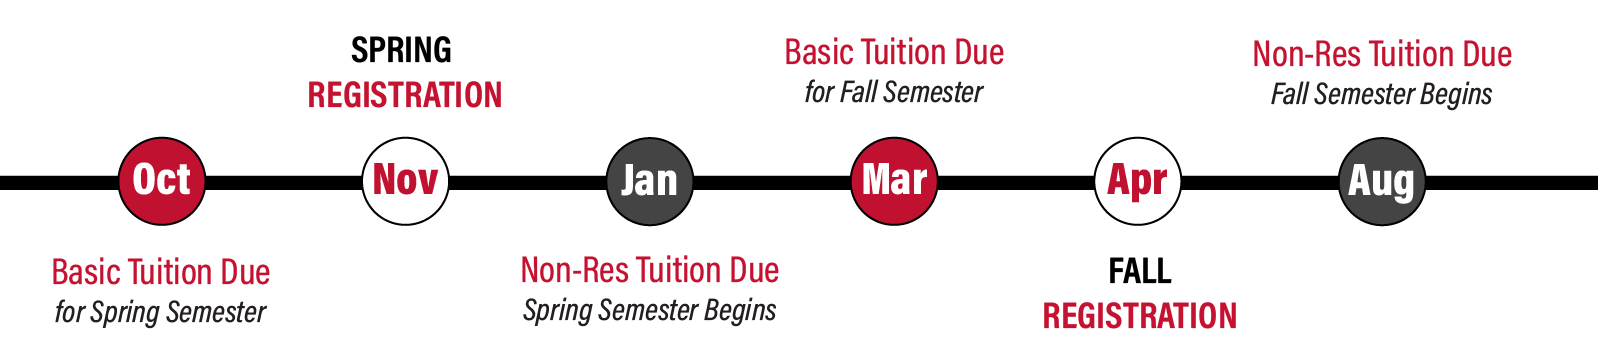 tuition and registration timeline